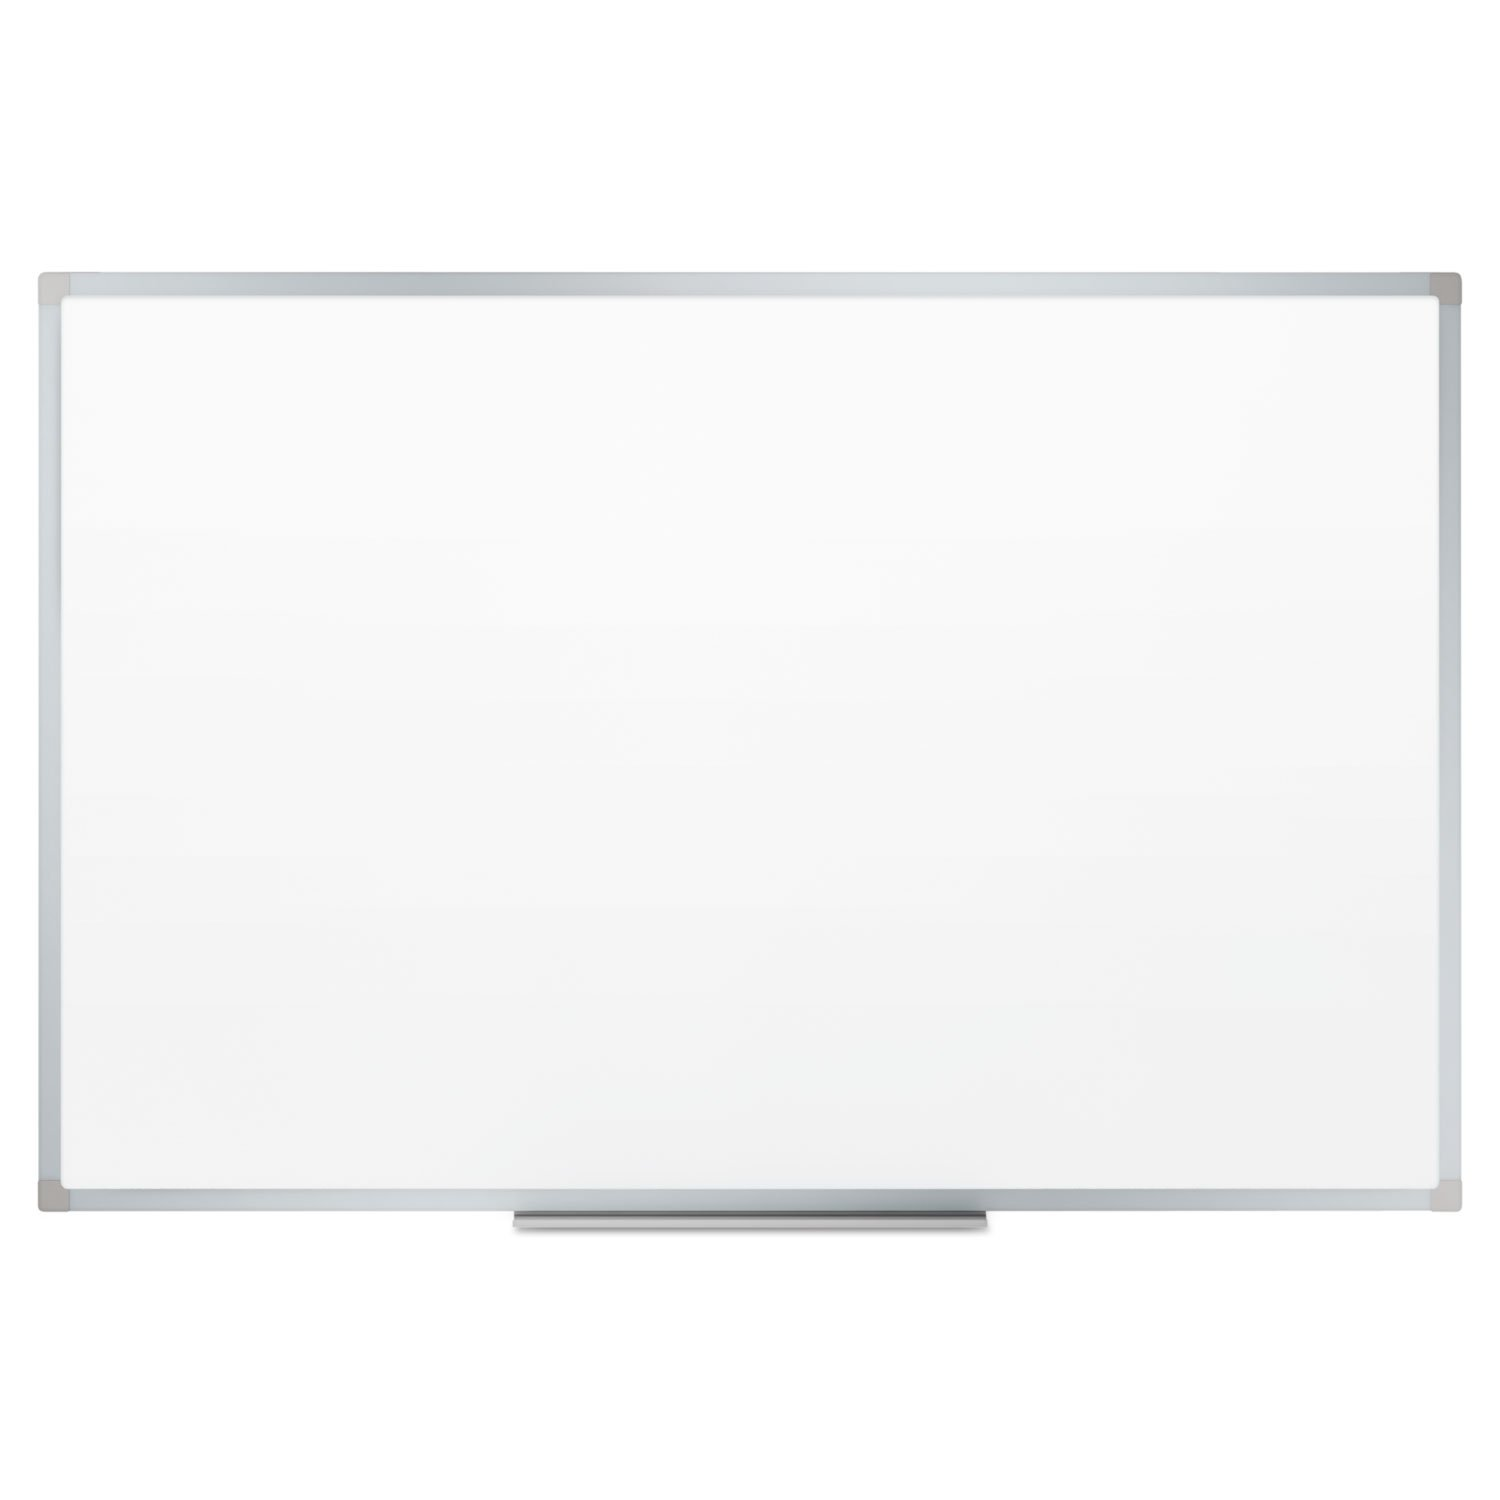 - Dry-Erase Board, Melamine Surface, 72 x 48, Silver Aluminum Frame -